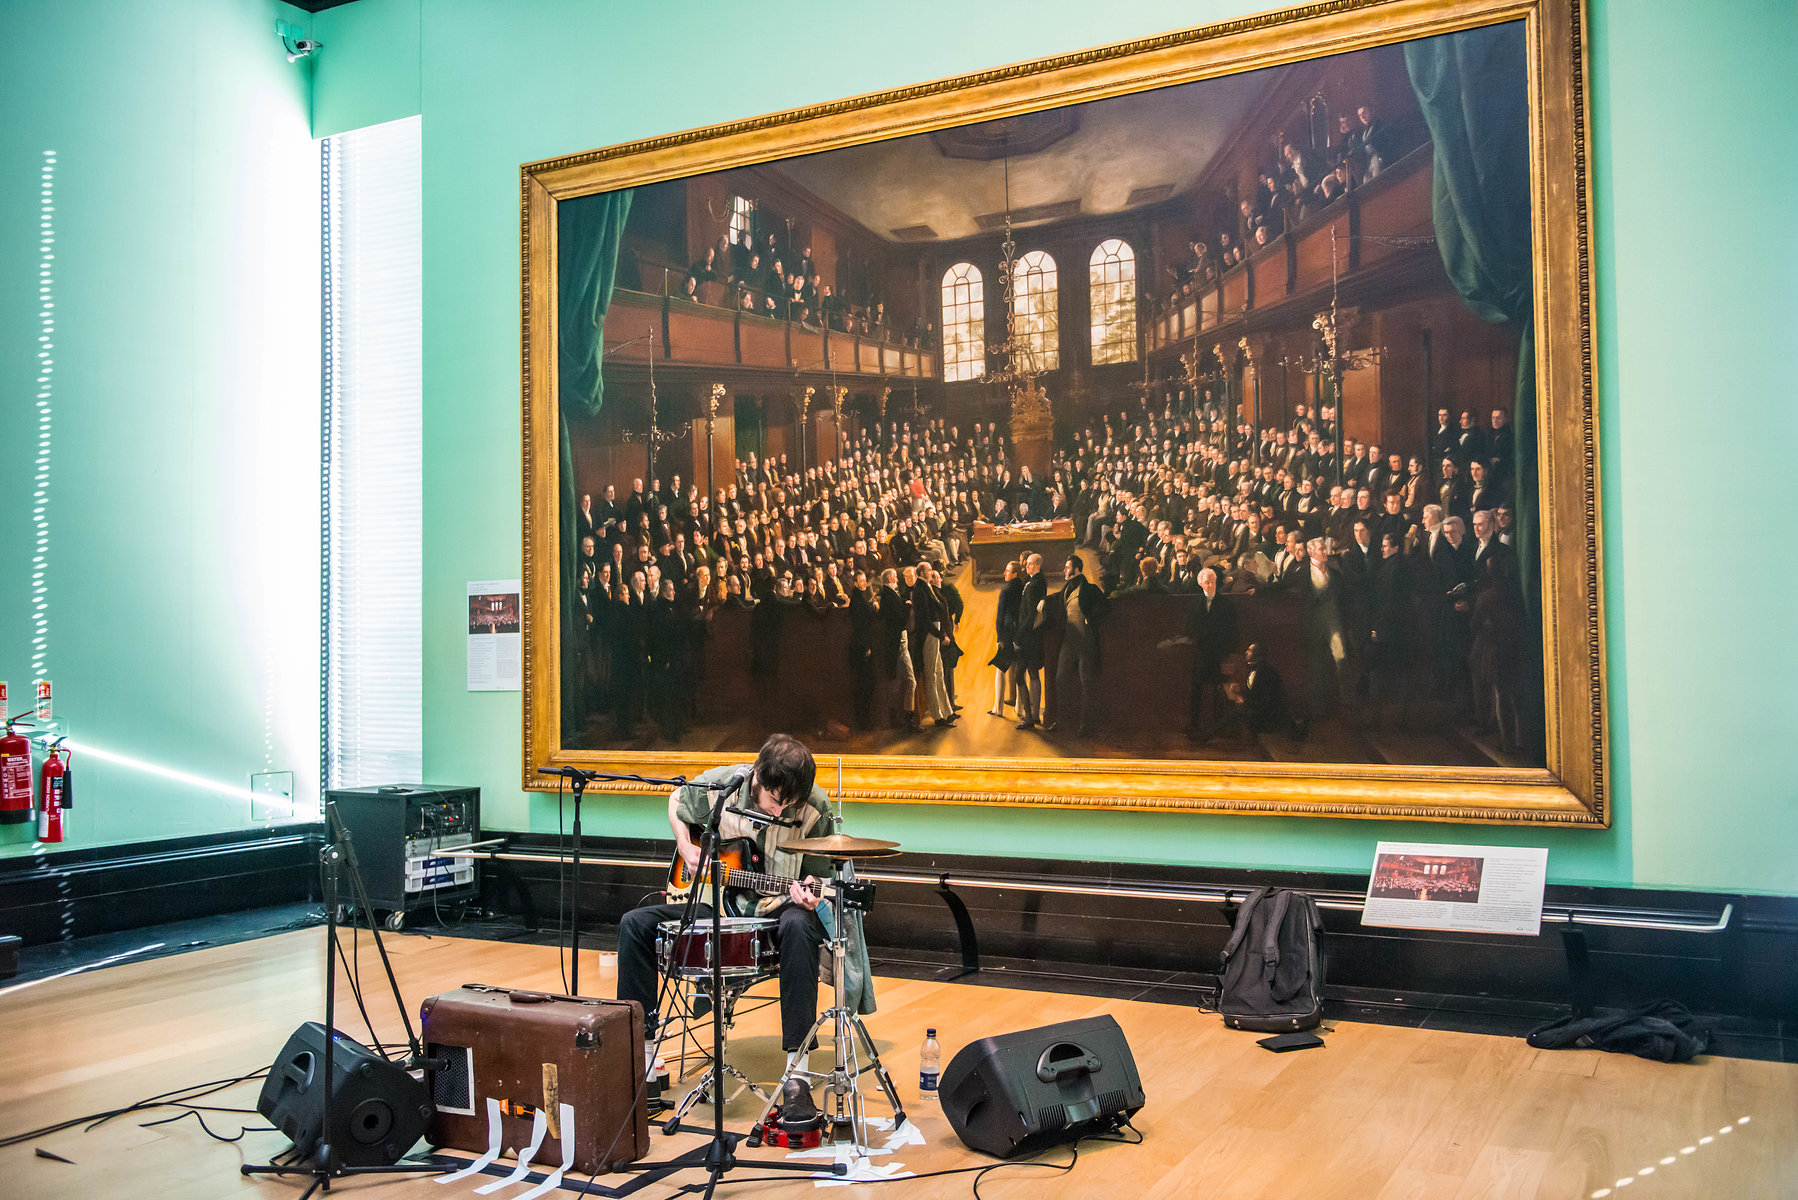 One Man Destruction Show at the National Portrait Gallery, 1st July 2016